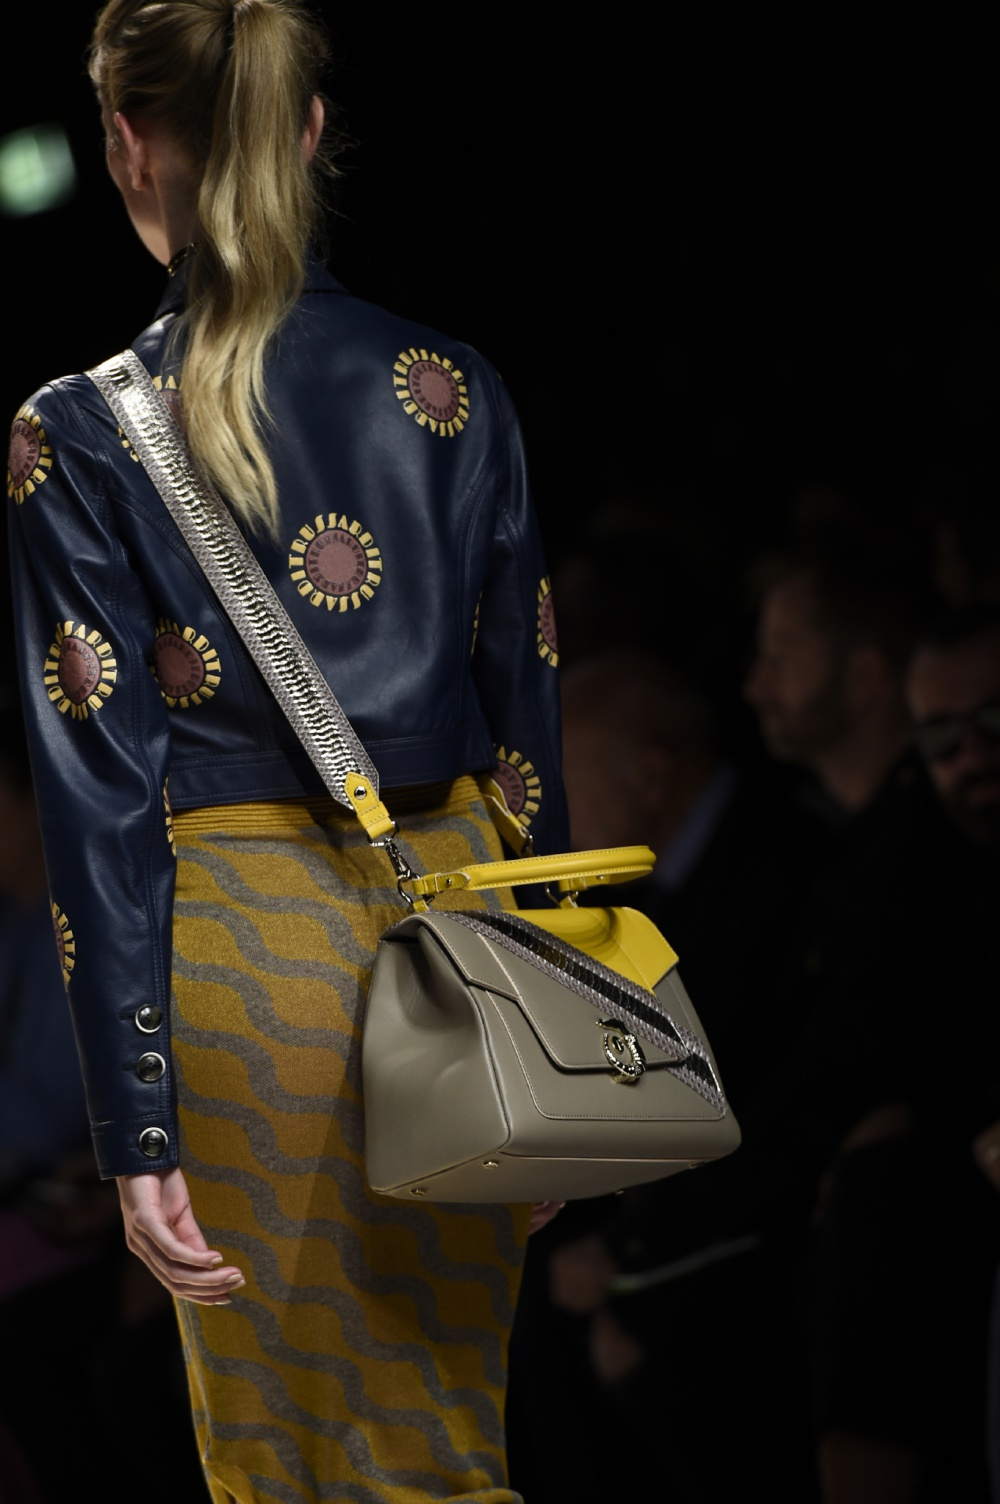 Gaia Trussardi introduced a new version of Lovy Bag